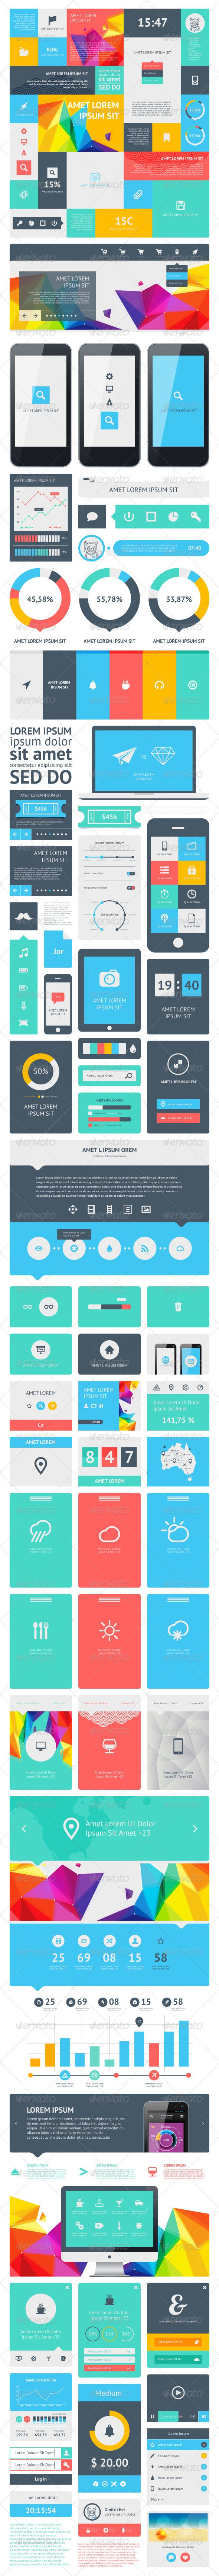 UI Set Components Featuring Flat Design Vector EPS. Download here: https://graphicriver.net/item/ui-set-components-featuring-flat-design/4512666?ref=ksioks